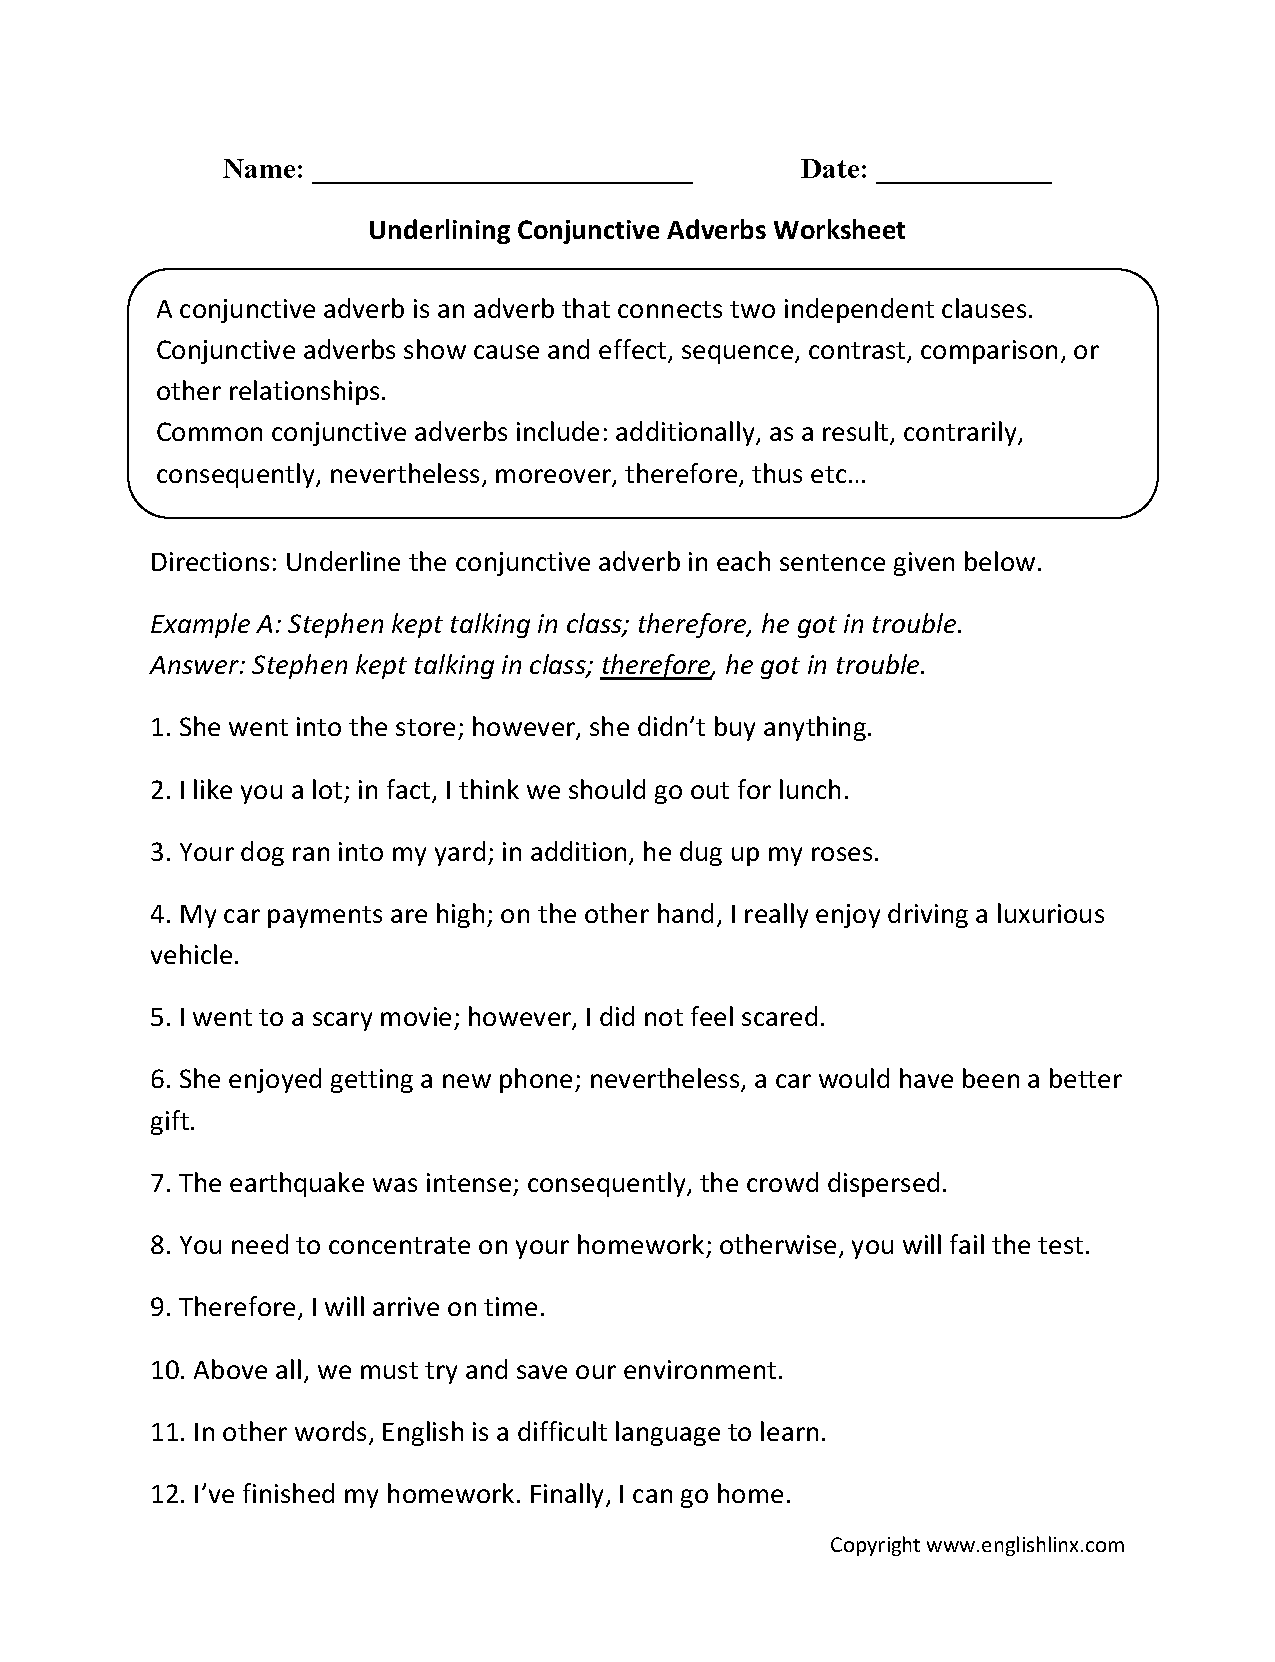 Weirdmailus  Inspiring Englishlinxcom  Conjunctions Worksheets With Likable Worksheet With Amazing Primary Maths Worksheets Also Language Arts Worksheets Grade  In Addition Short U Worksheets For First Grade And Worksheet For Place Value As Well As Basic Money Management Worksheets Additionally Free Winter Math Worksheets From Englishlinxcom With Weirdmailus  Likable Englishlinxcom  Conjunctions Worksheets With Amazing Worksheet And Inspiring Primary Maths Worksheets Also Language Arts Worksheets Grade  In Addition Short U Worksheets For First Grade From Englishlinxcom